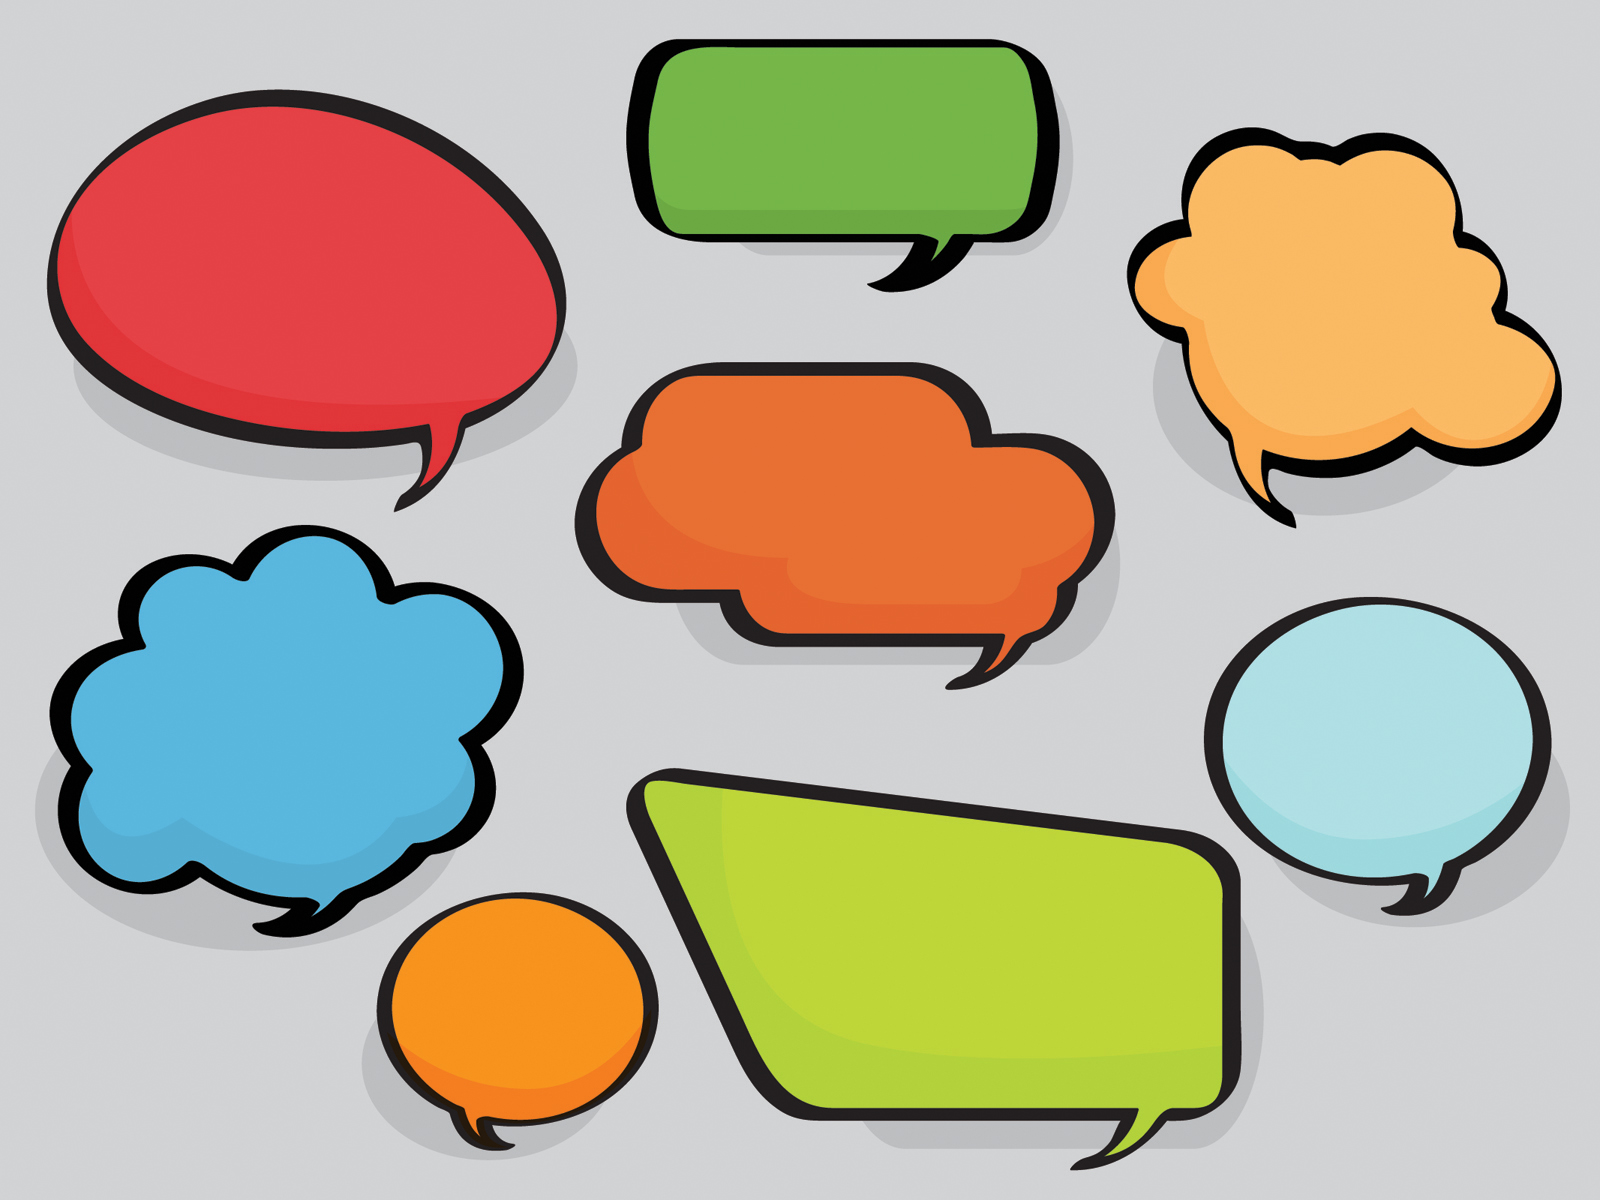 Speech Bubble Printable With Lines - ClipArt Best